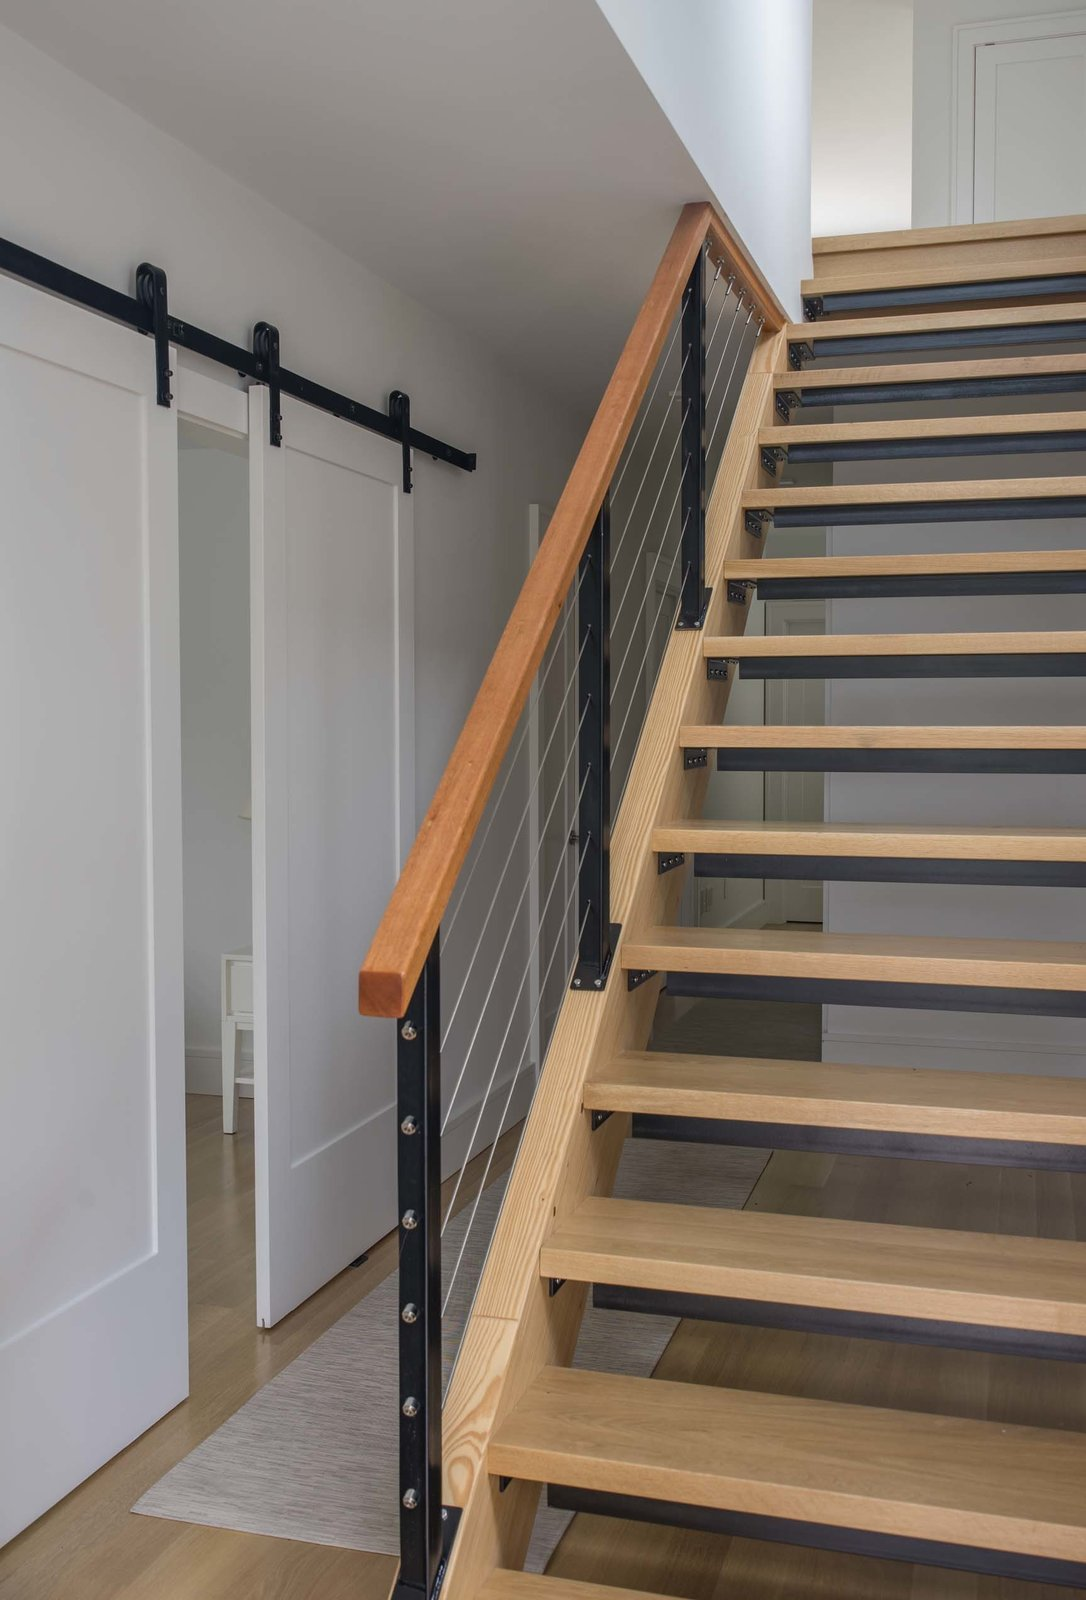 Staircase, Wood, Cable, Metal, and Wood  Staircase Wood Cable Metal Wood Photos from Wellfleet Modern